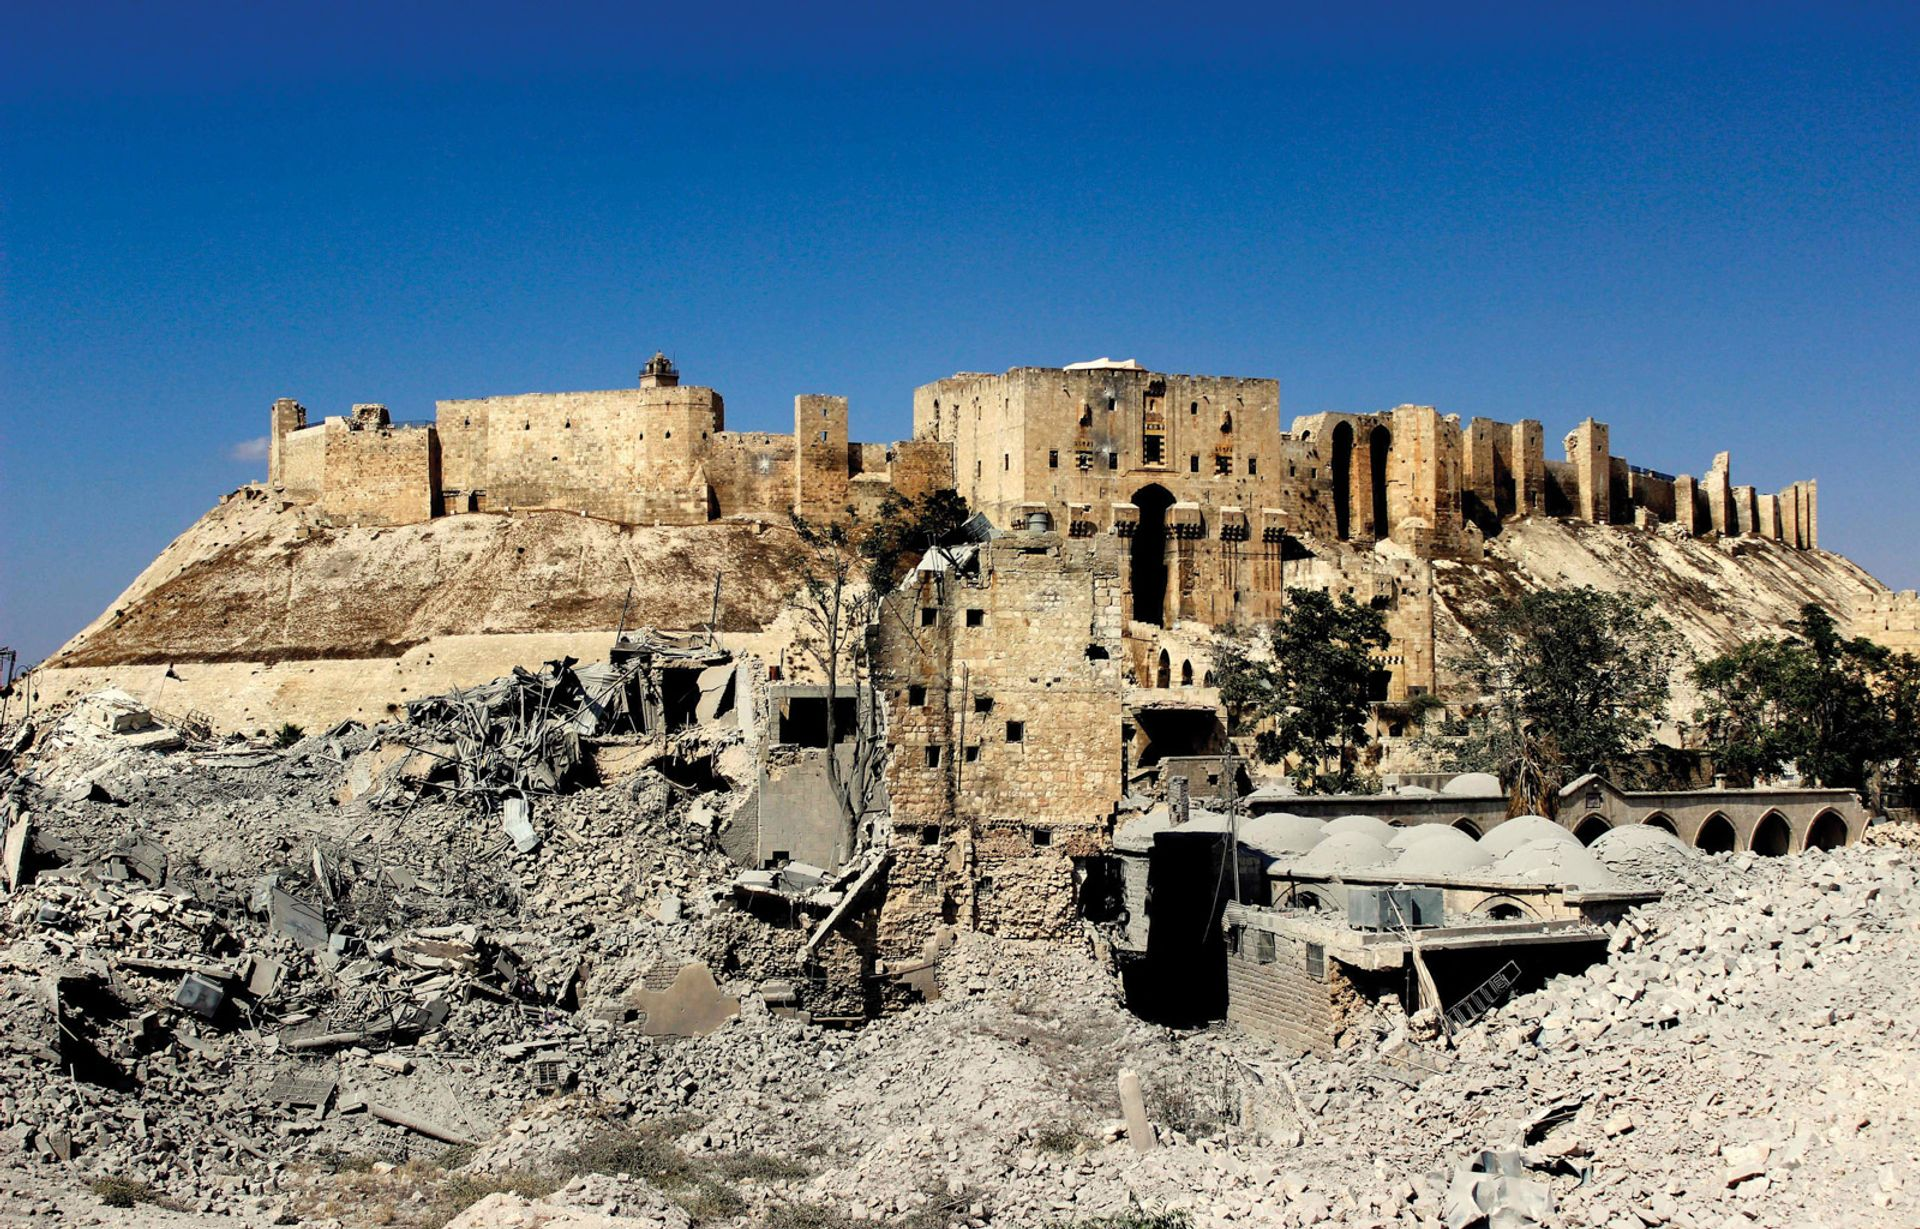 The entrace to the Citadel of Aleppo, with the ruins of the Khusruwiyah Mosque and the Carlton Hotel © Sultan Kitaz, 2014